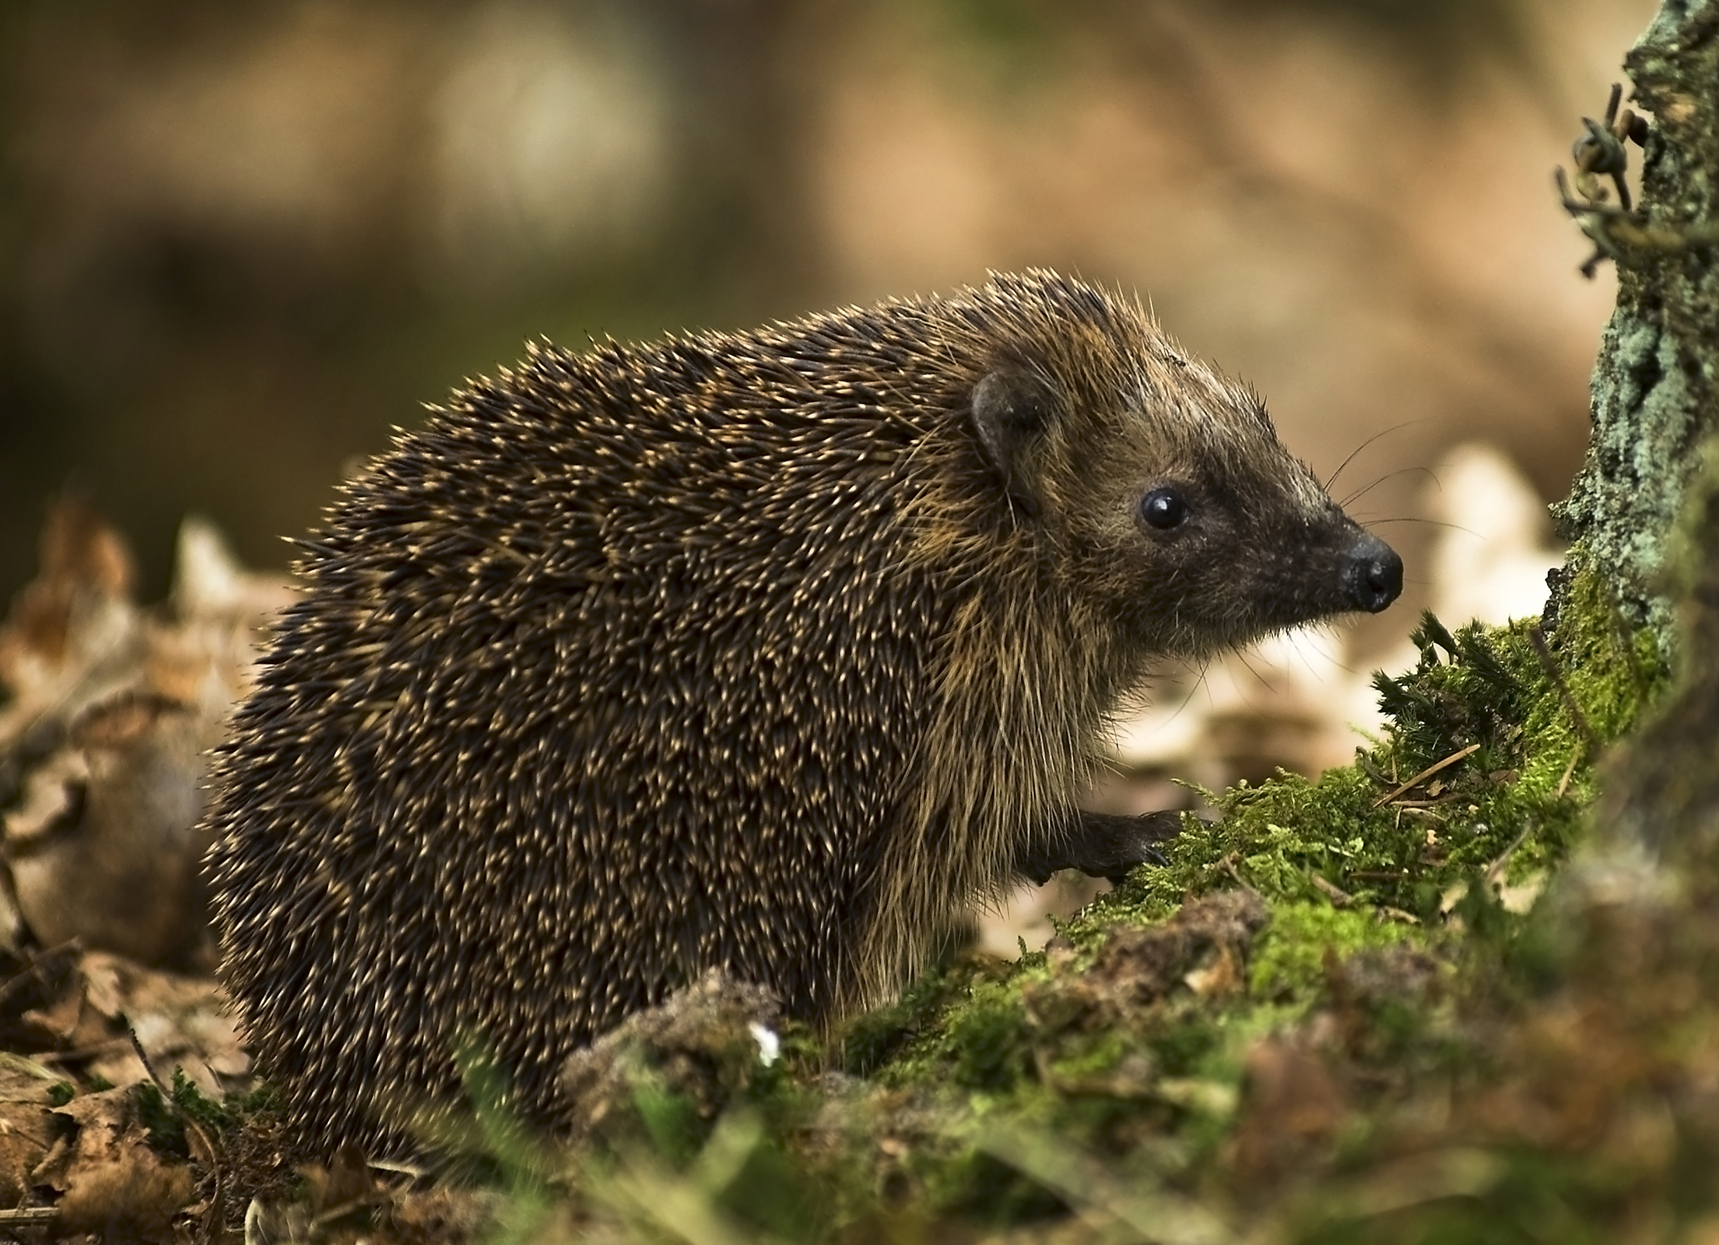 In England, hedgehogs are considered an endangered species ...